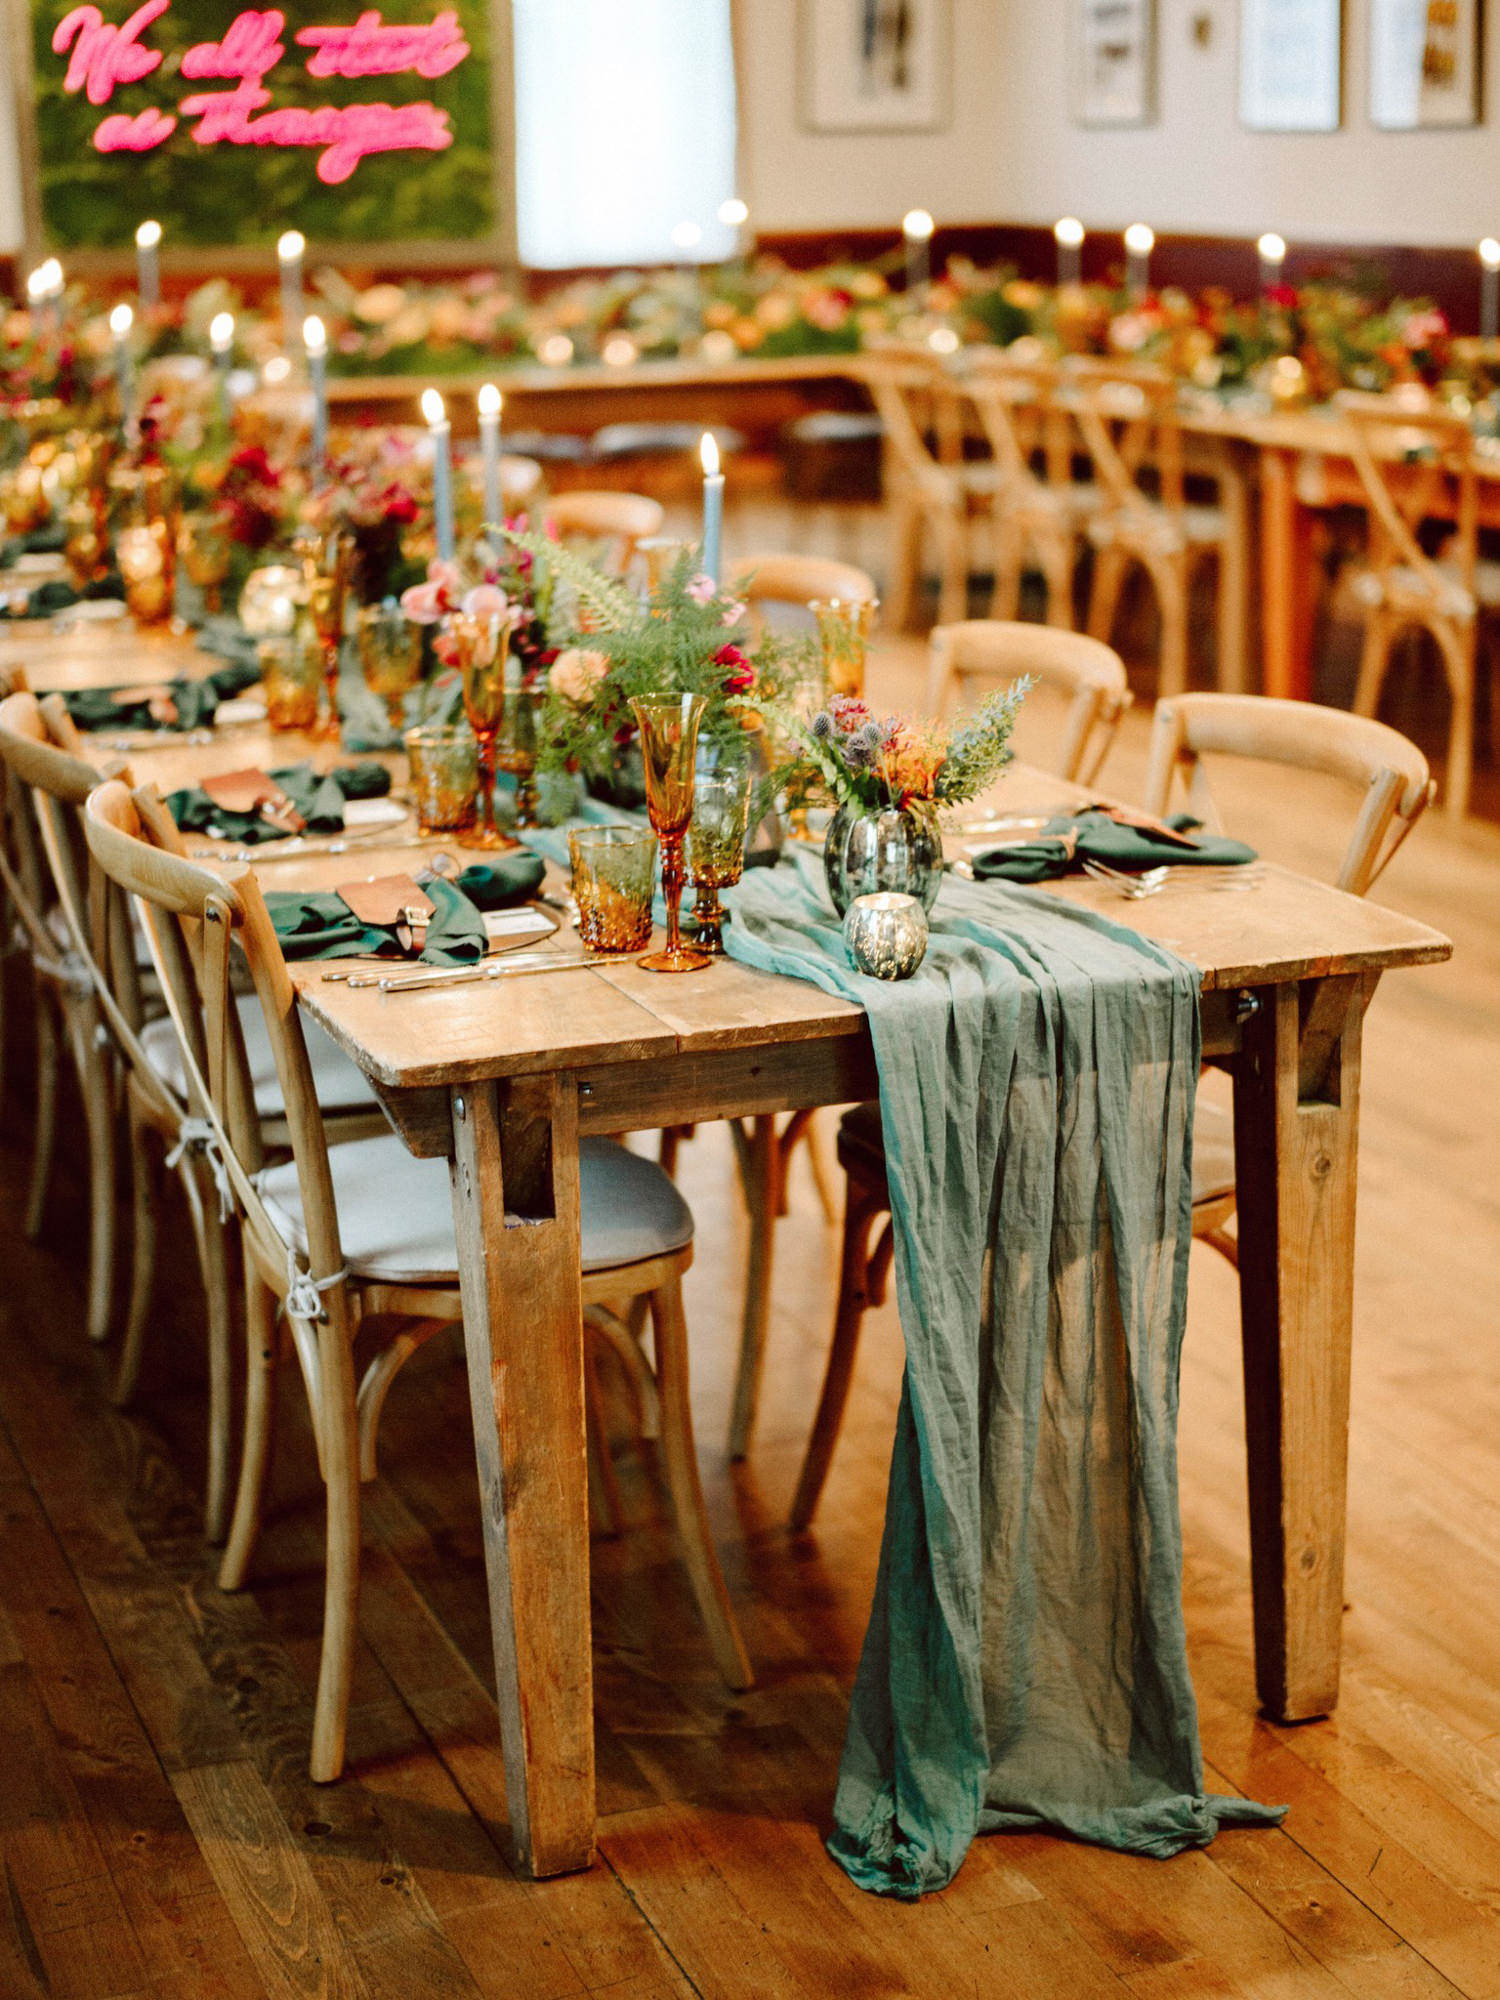 Wedding reception with green table runner and amber glass - Photo by Benj Haisch